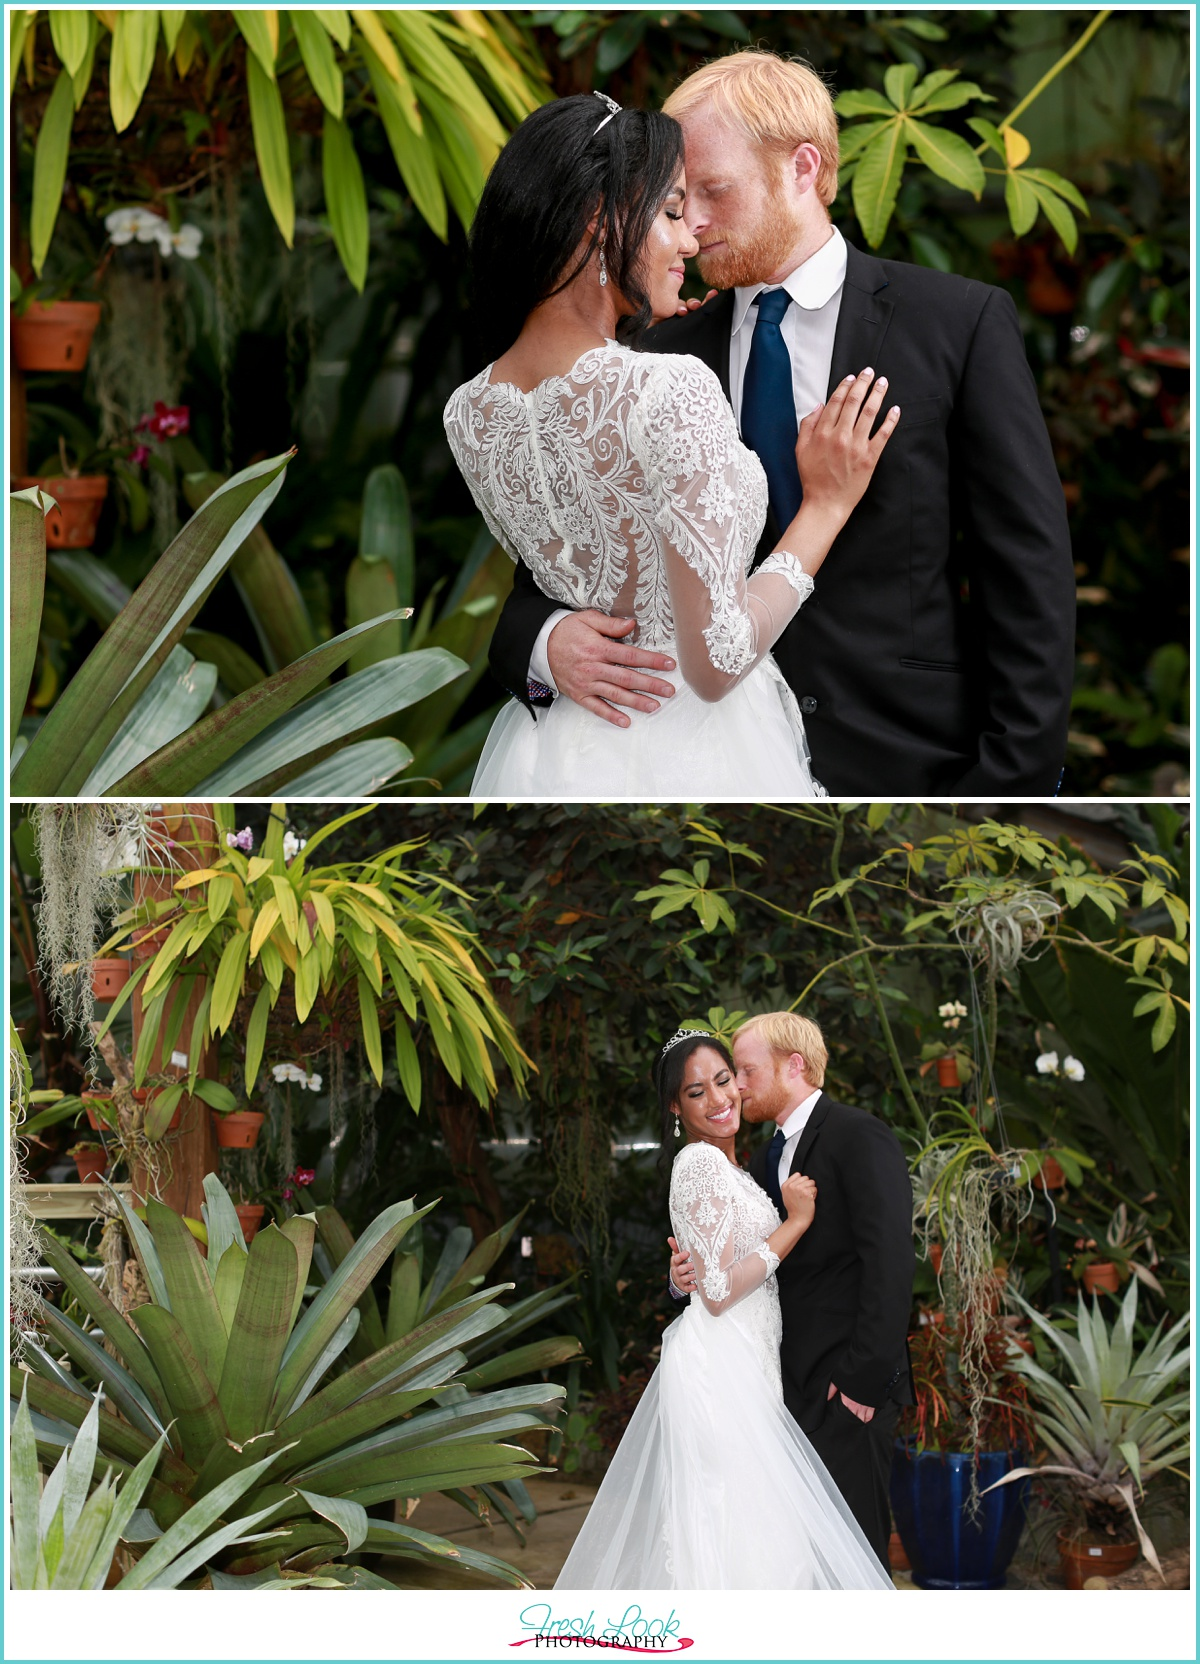 Virginia Wedding at botanical gardens